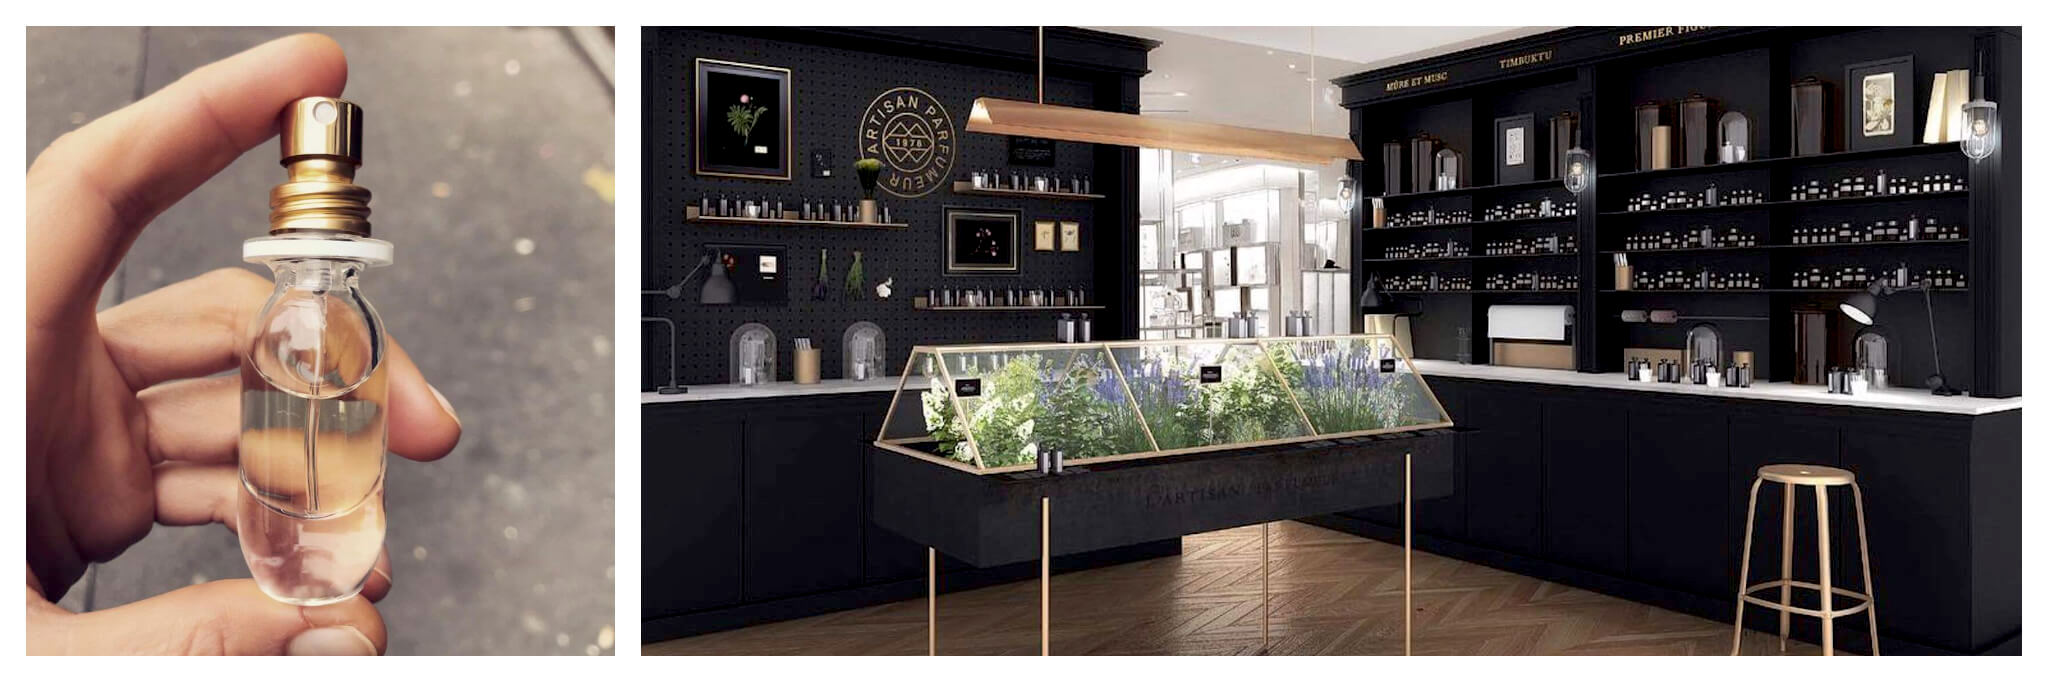 Left: a hand holding a small, clear bottle of perfume with a gold top. Right: interior of a perfume shop. The walls are black and the display cases have gold details. There is a glass case with green, white, and purple flowers.